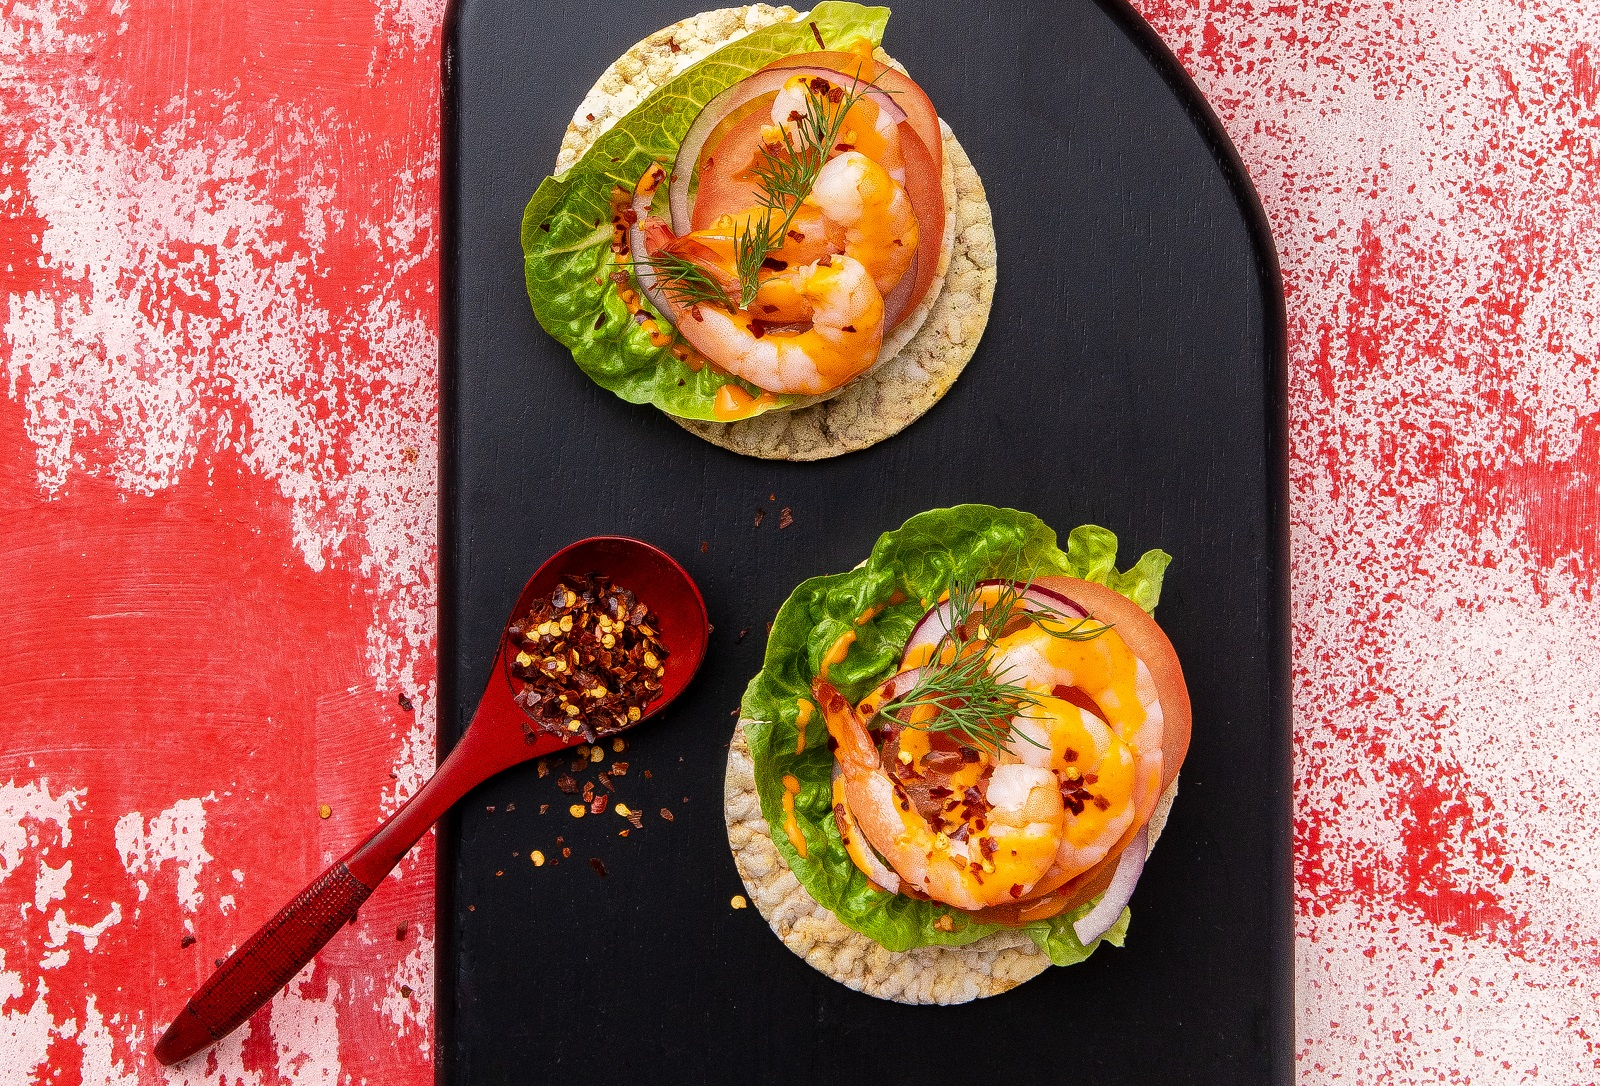 Prawns, Sriracha Mayo, Red Onion, Lettuce & Chilli Flakes on CORN THINS slices